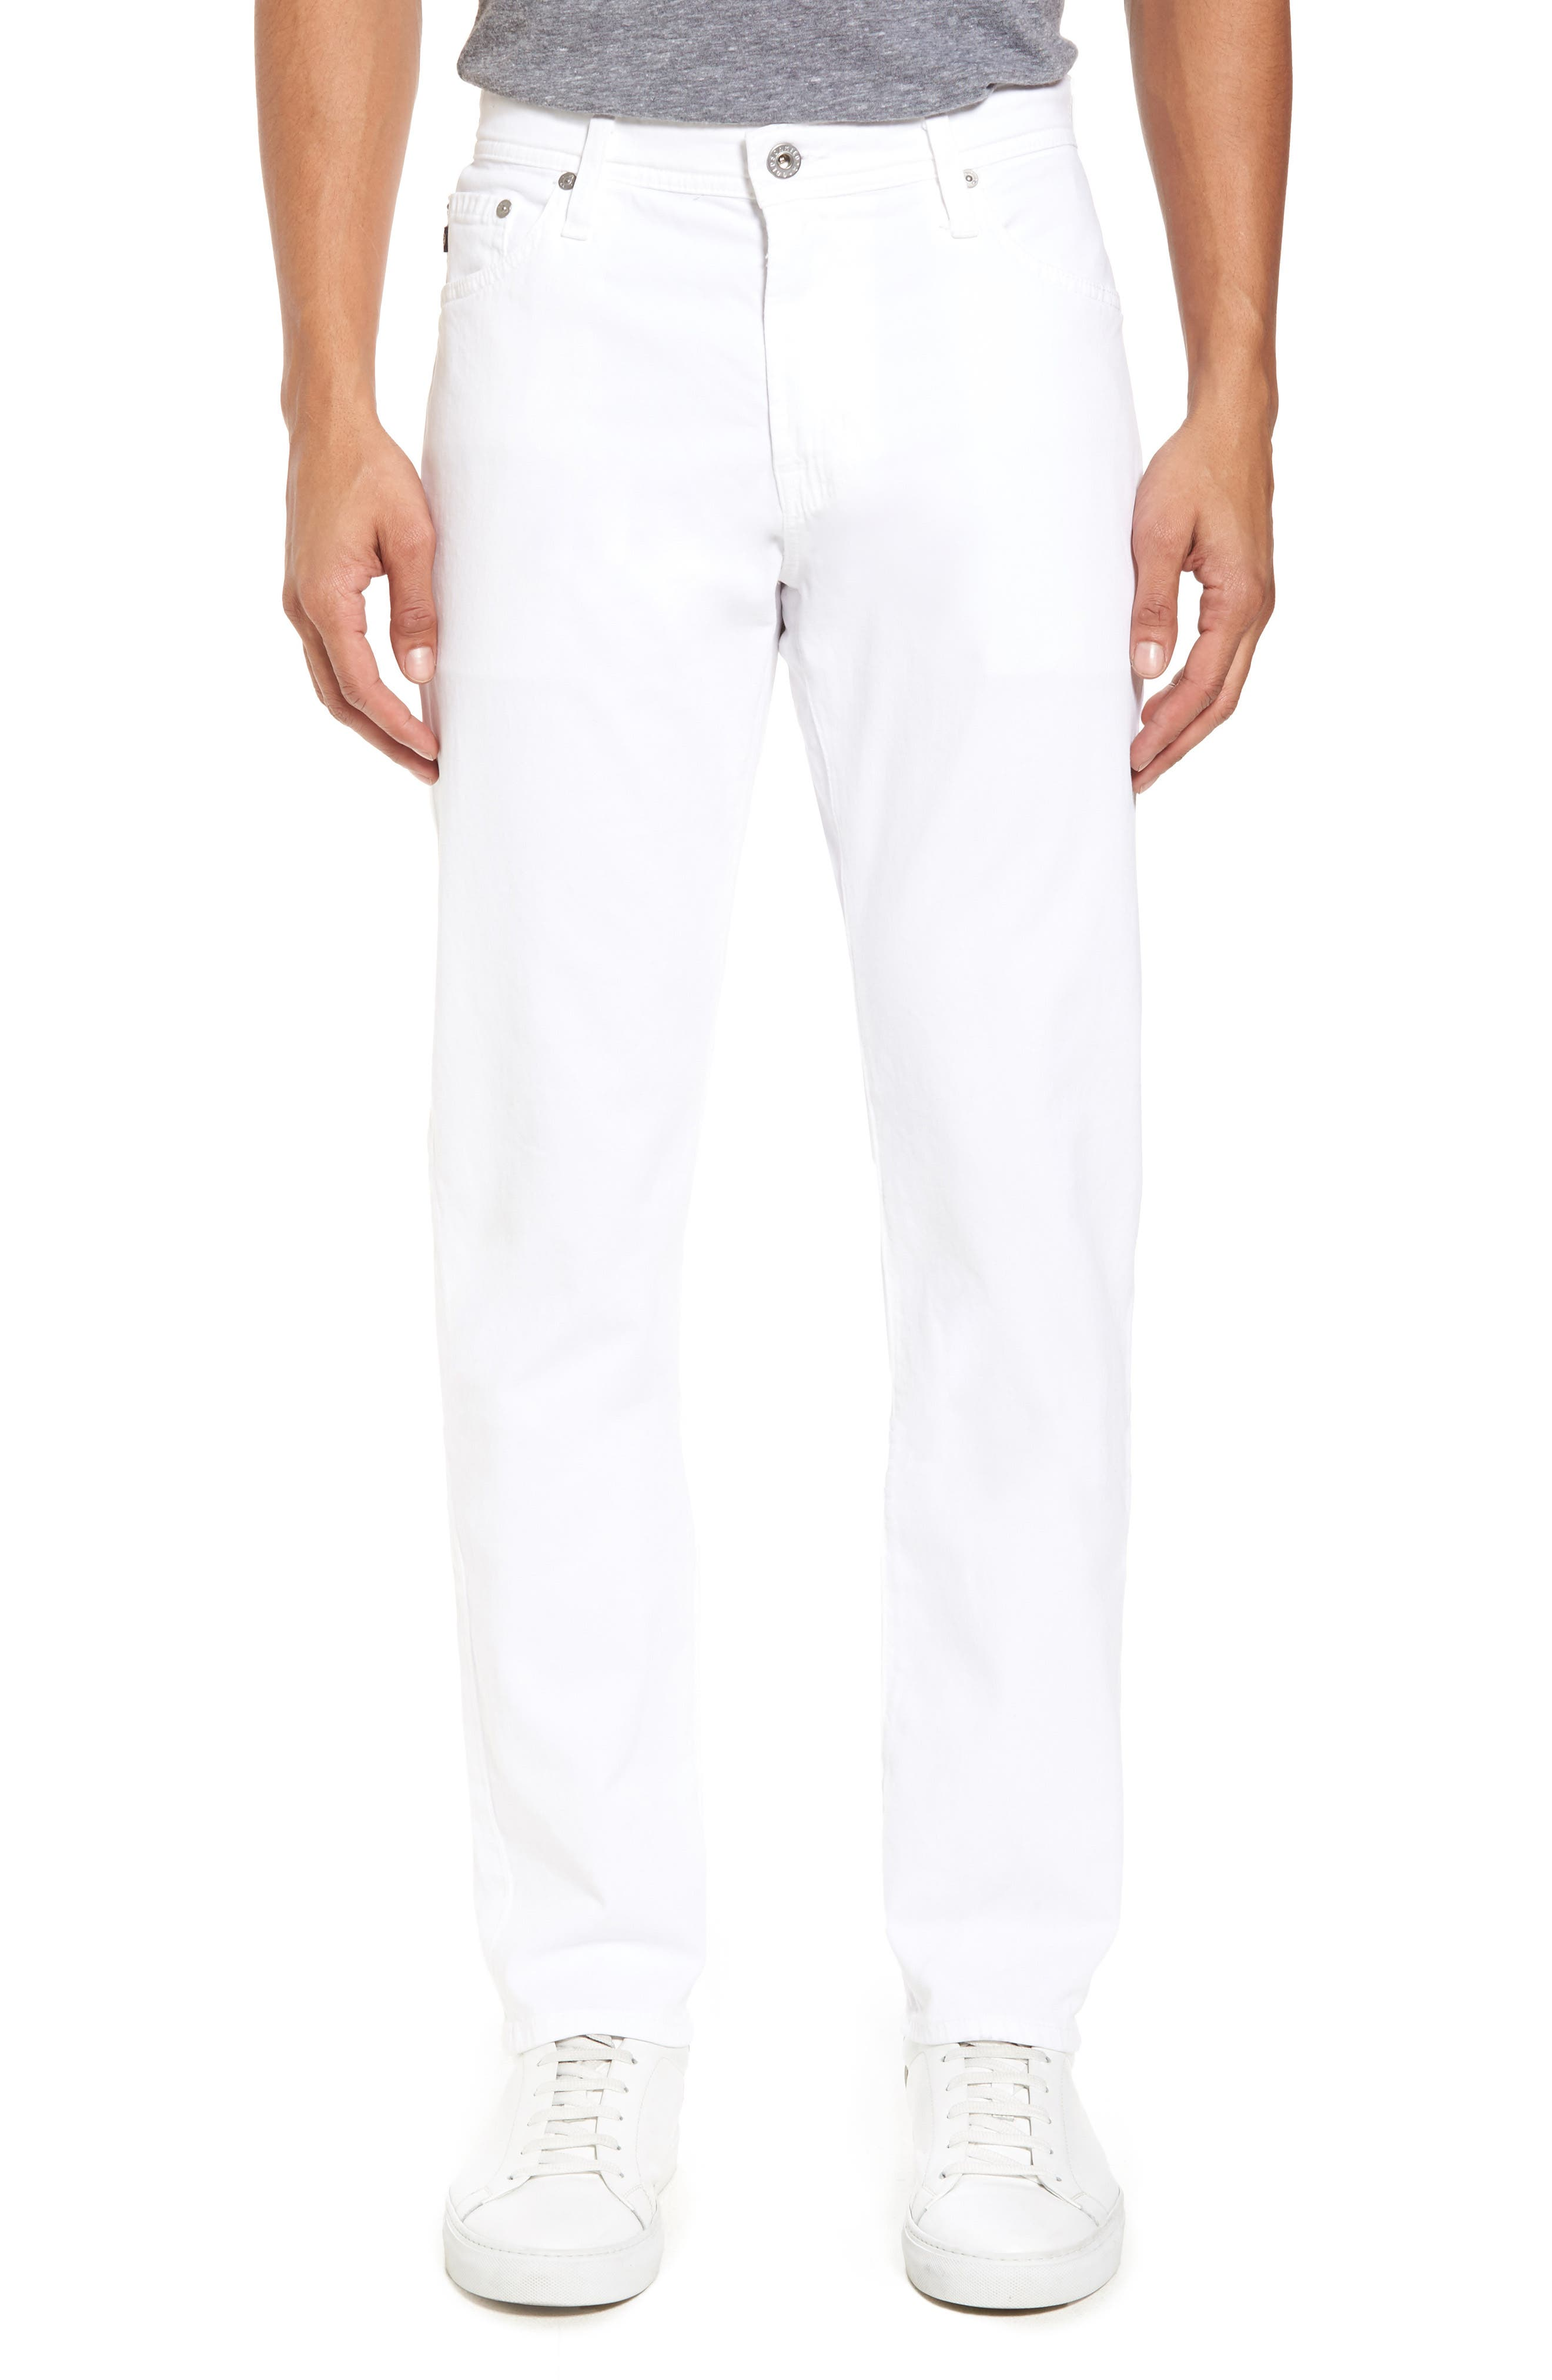 Men's White Big & Tall Pants & Chinos | Nordstrom